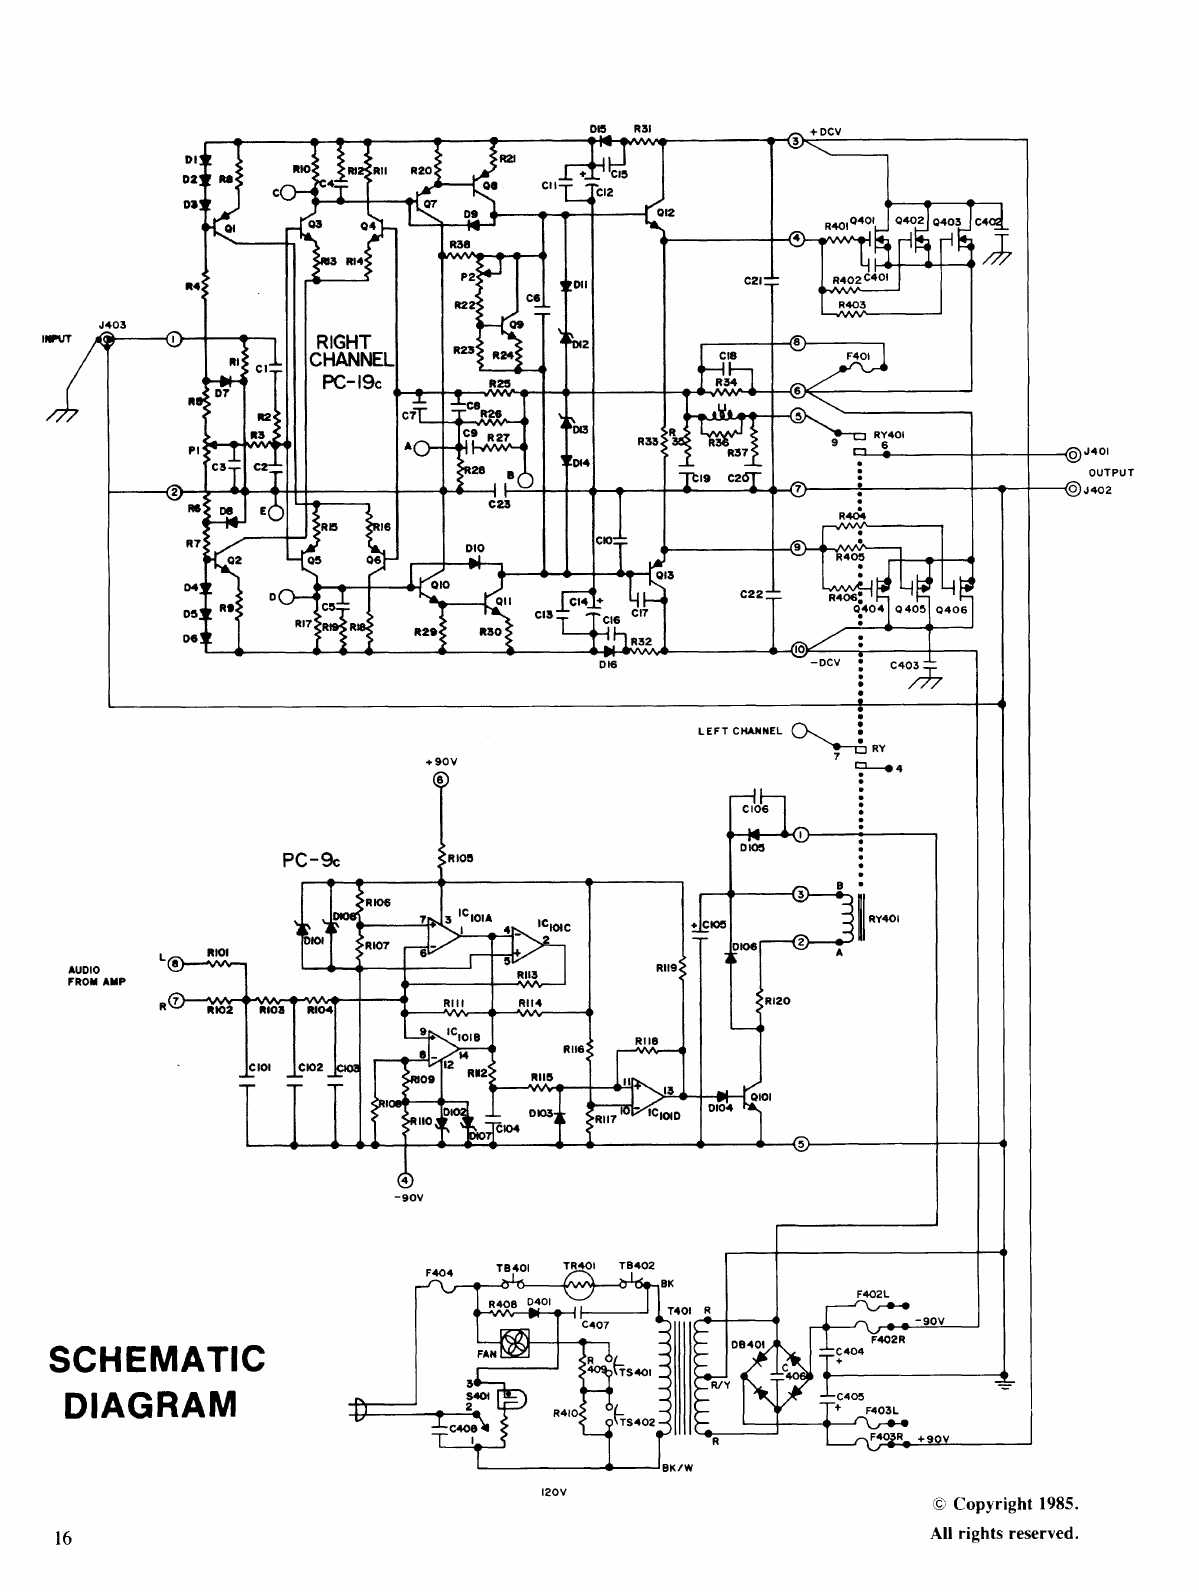 Page 16 of Hafler Stereo Amplifier DH-500 User Guide